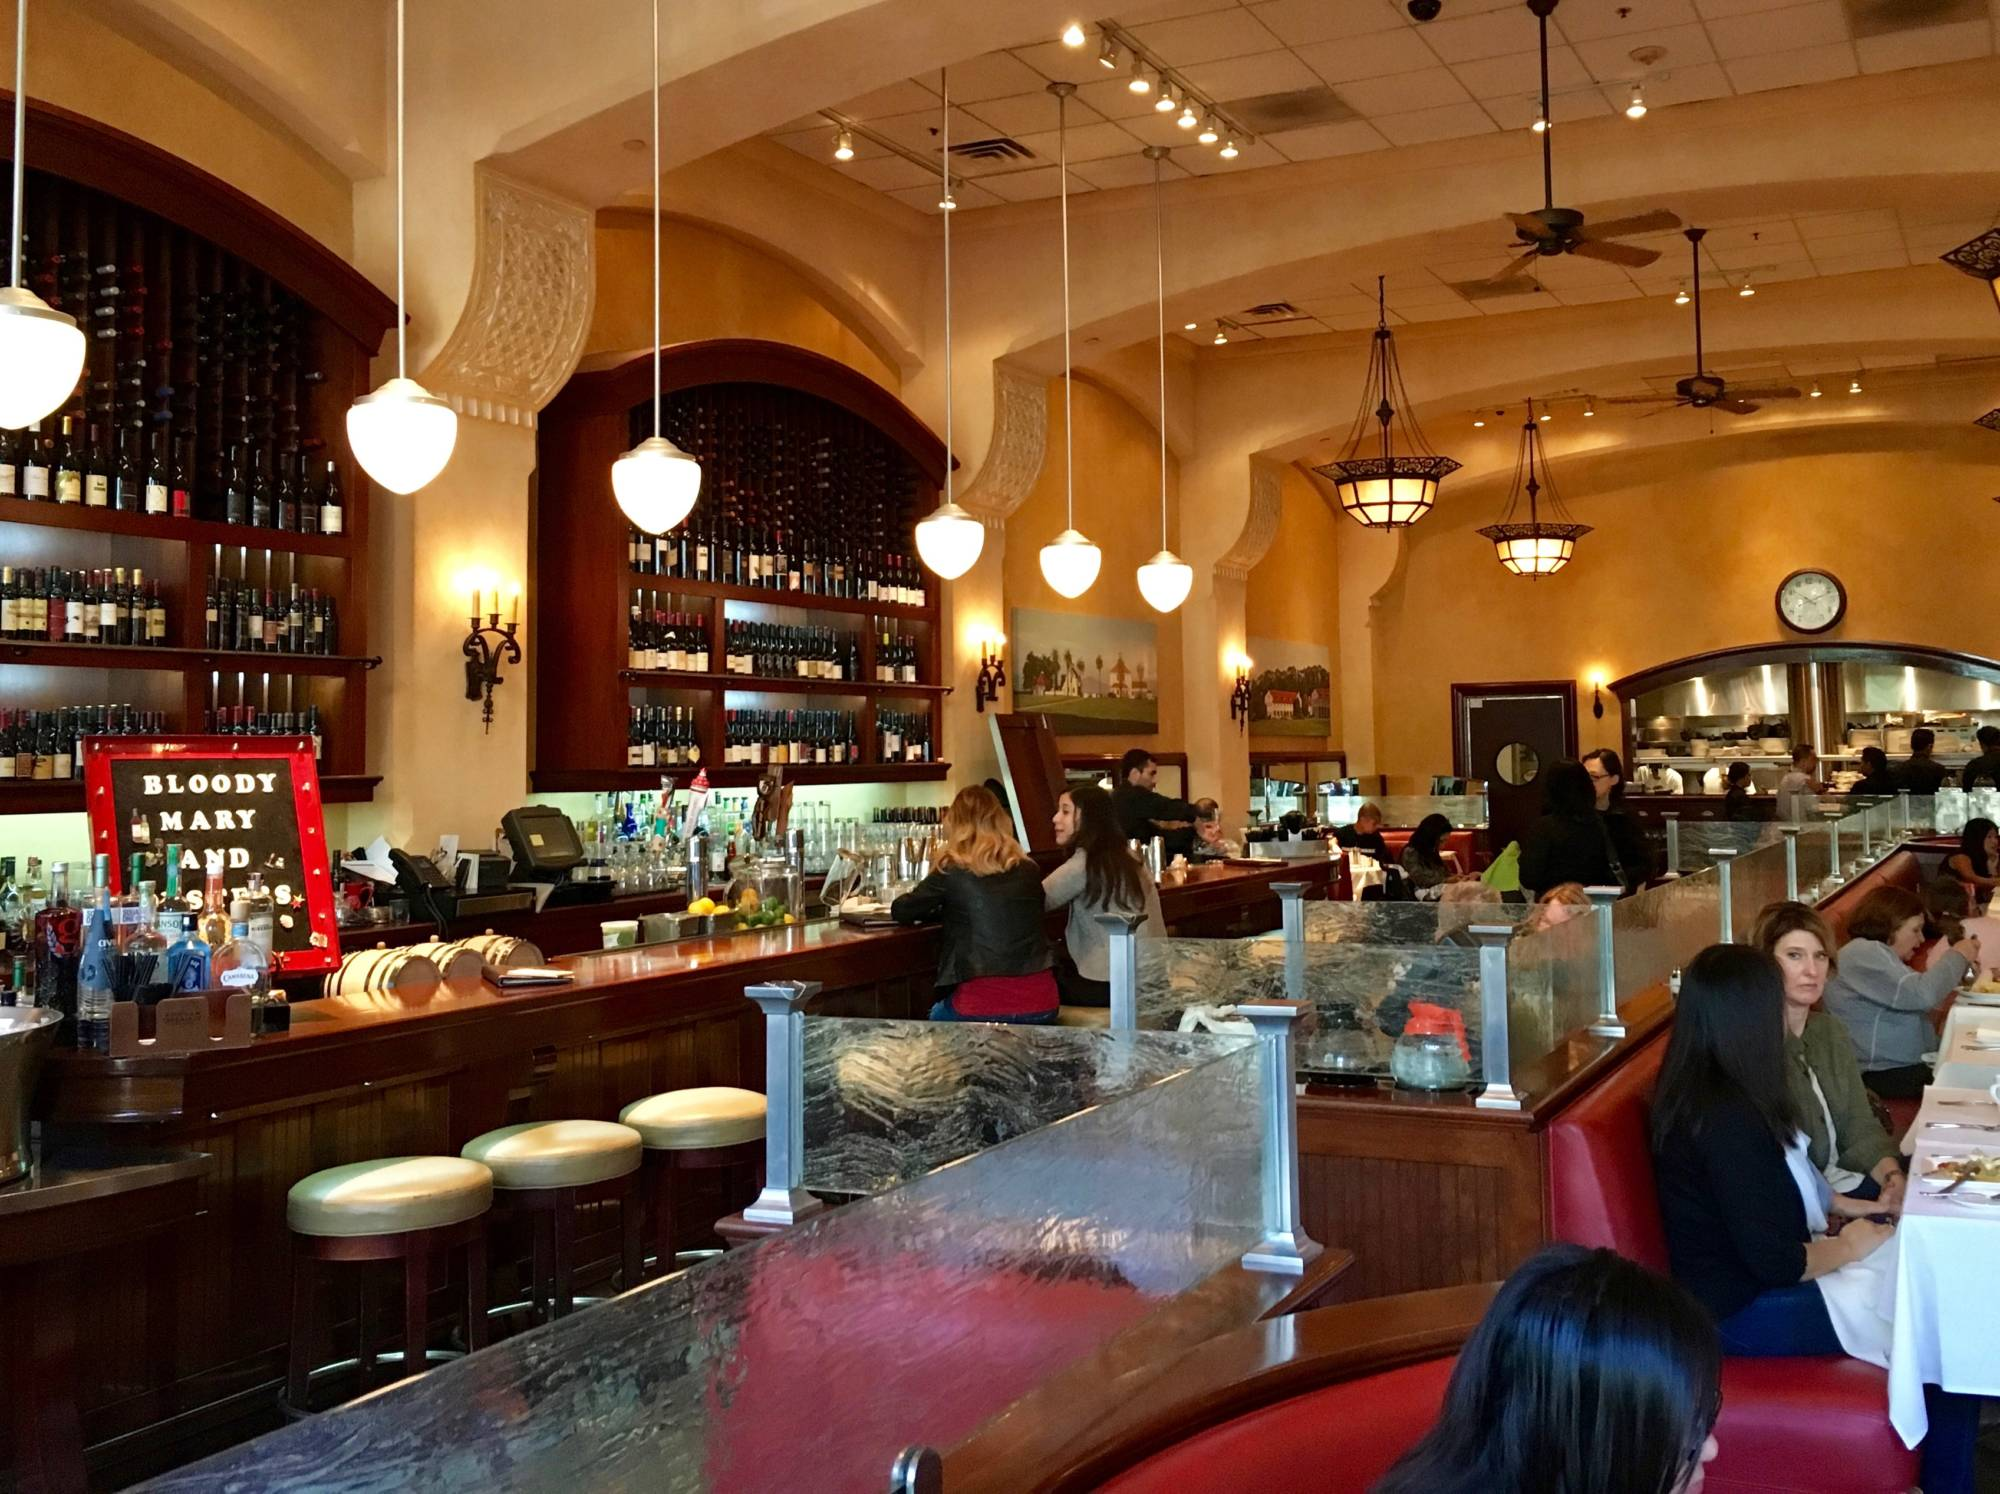 The wine bar and dining room of Village California Bistro and Wine Bar.